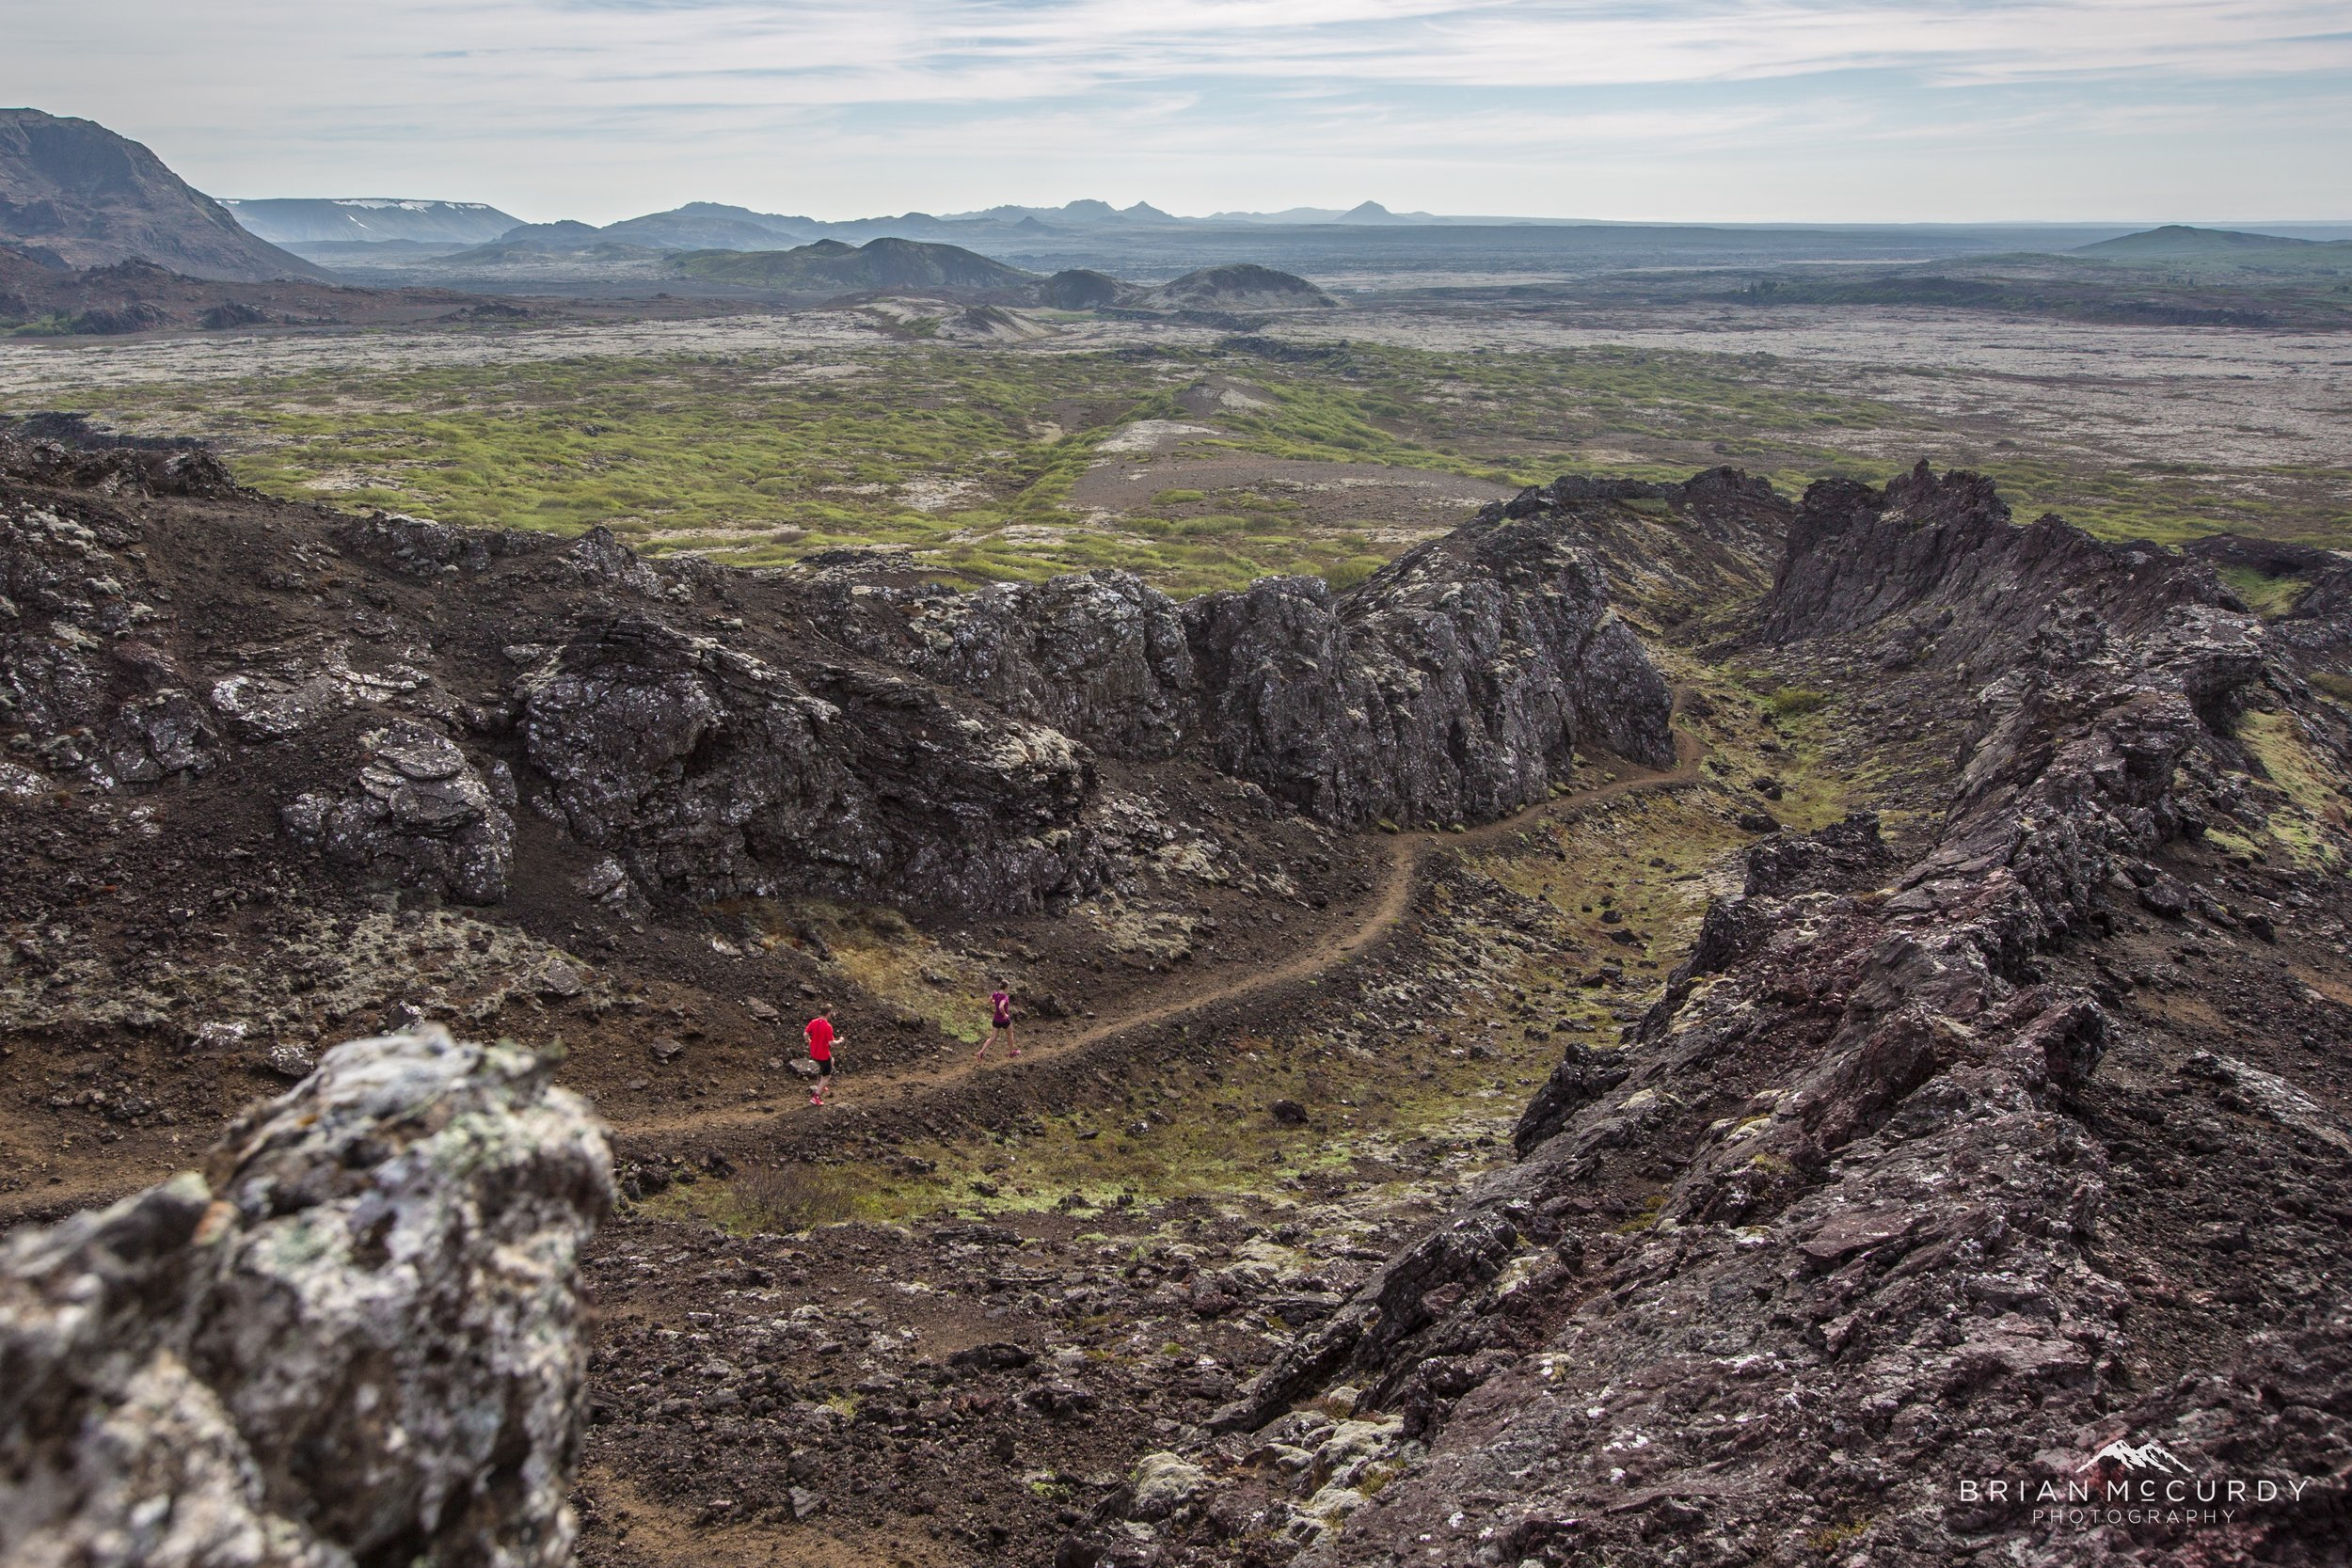 Iceland adventure running retreat   The trail running adventure of a lifetime